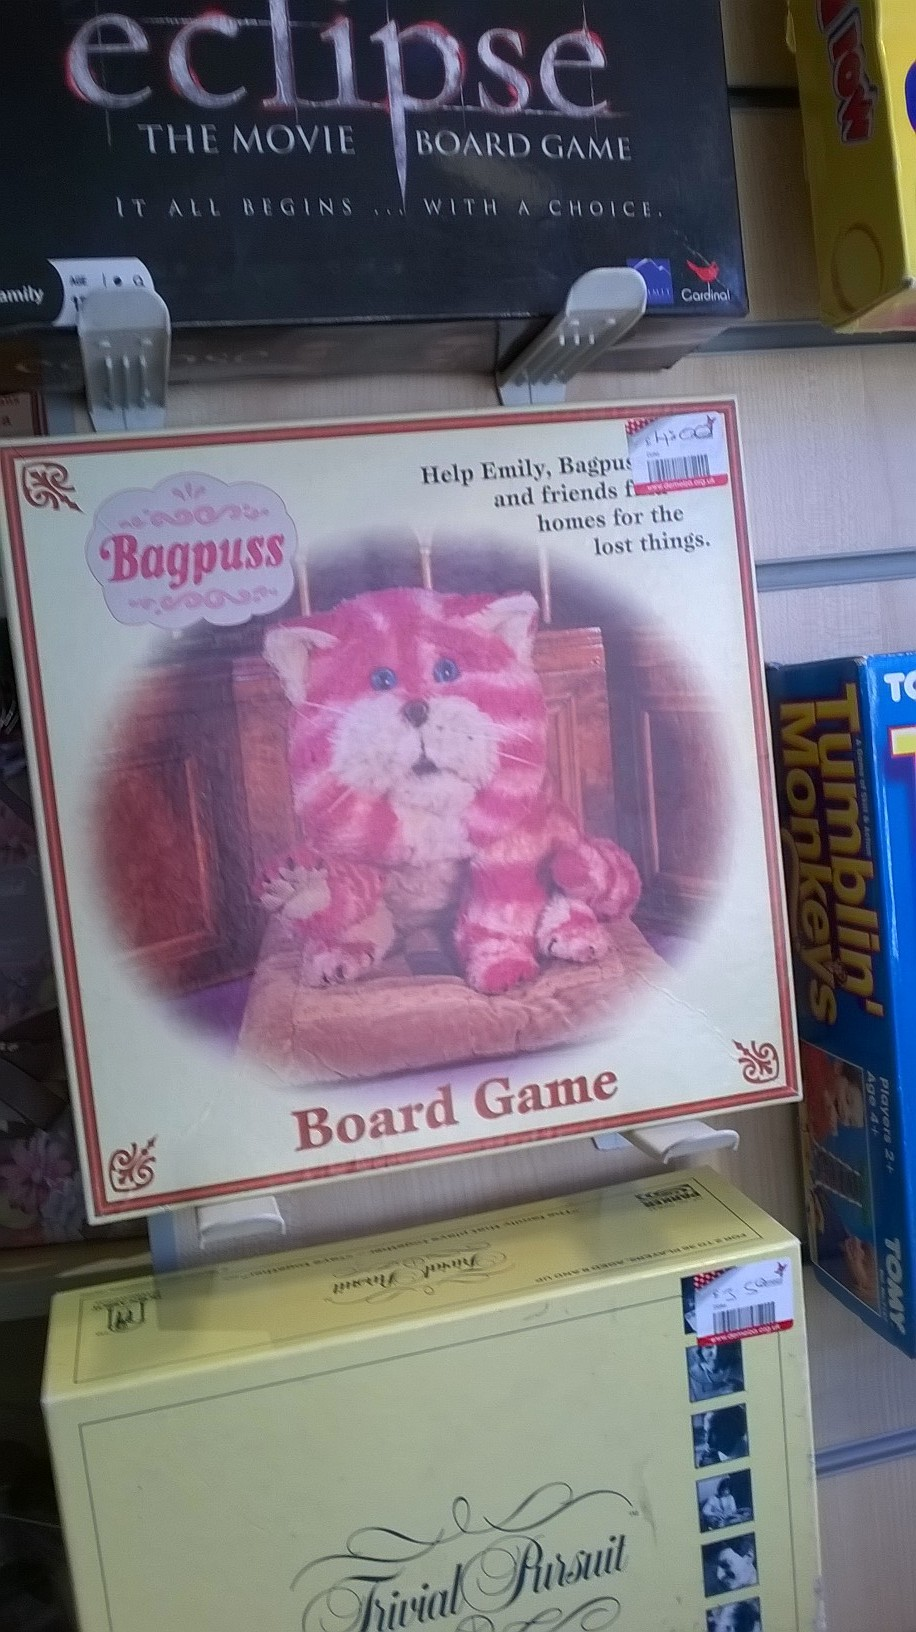 Poor old Bagpuss, he's always left on the shelf.